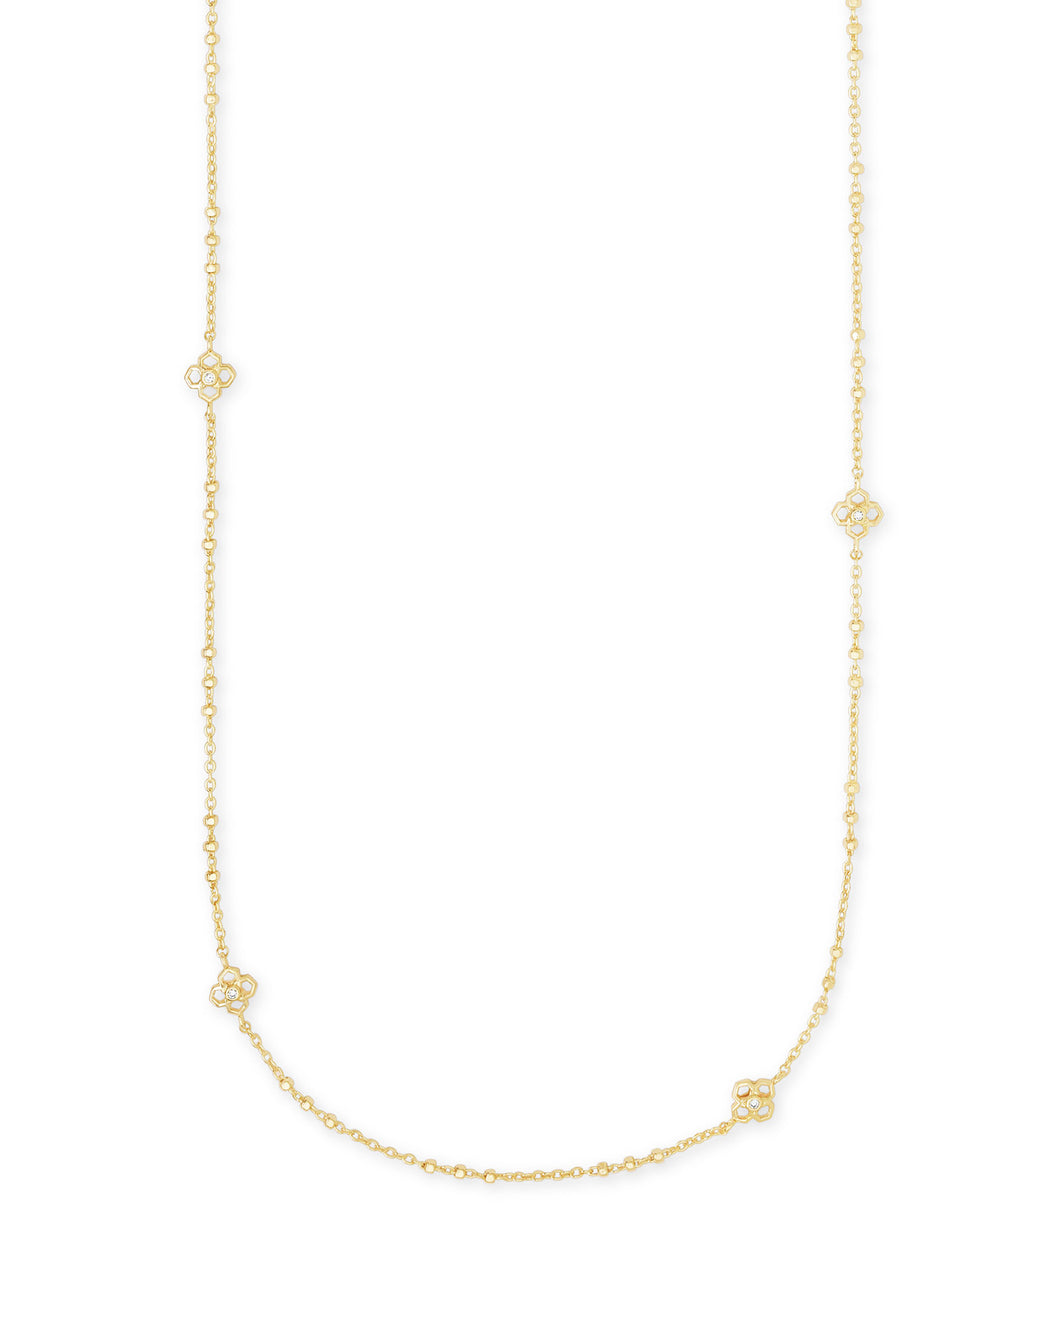 Rue Necklace - in Gold or Silver